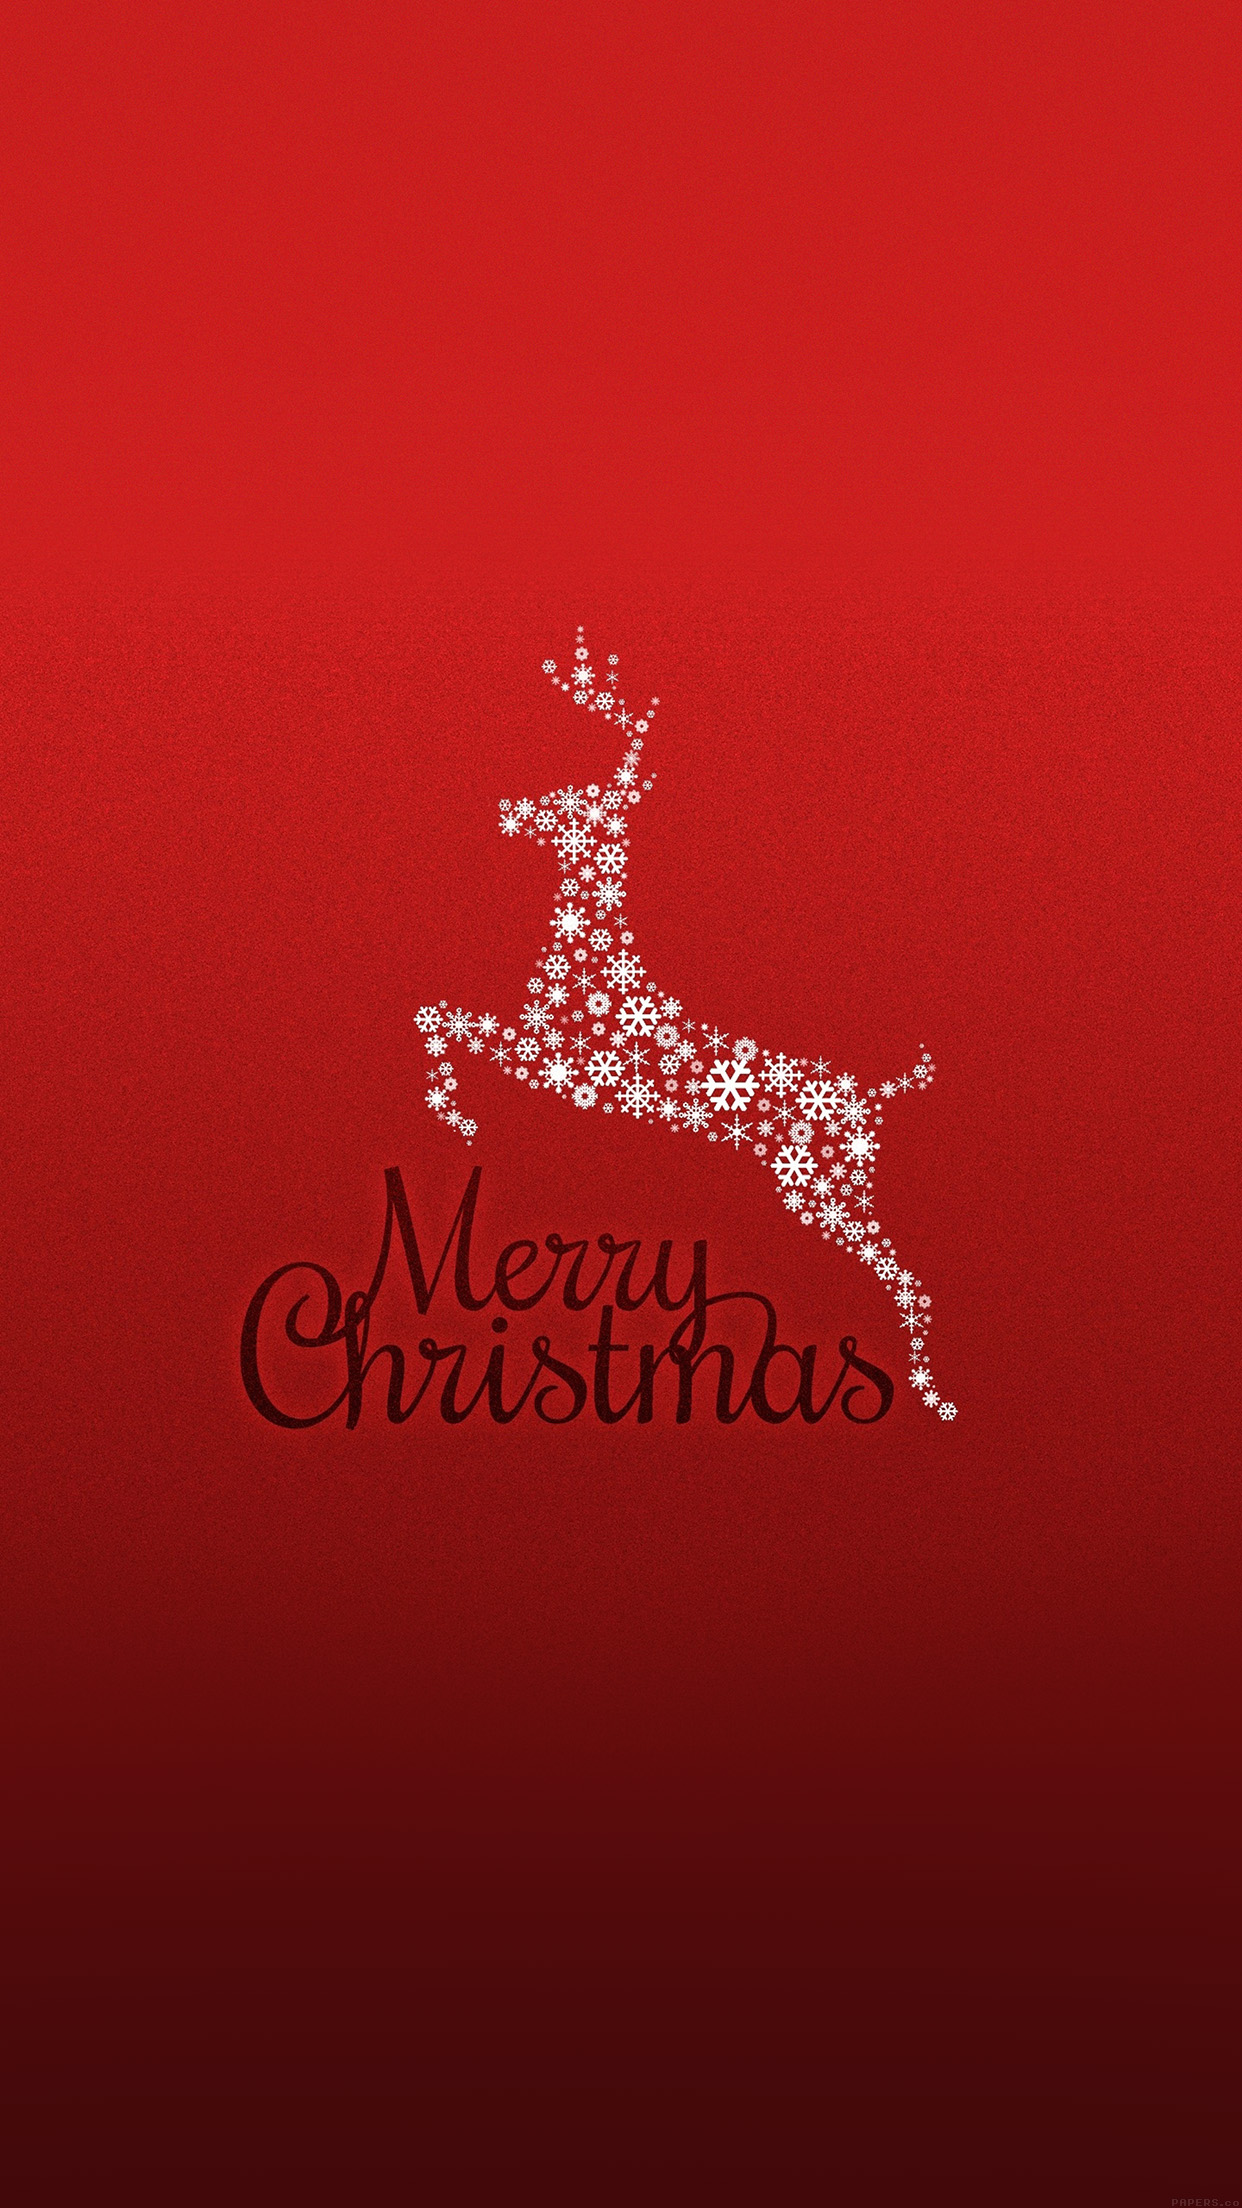 All Of These Iphone 6s And Iphone 6 Chrismas Wallpapers - Merry Christmas Wallpaper Iphone X , HD Wallpaper & Backgrounds